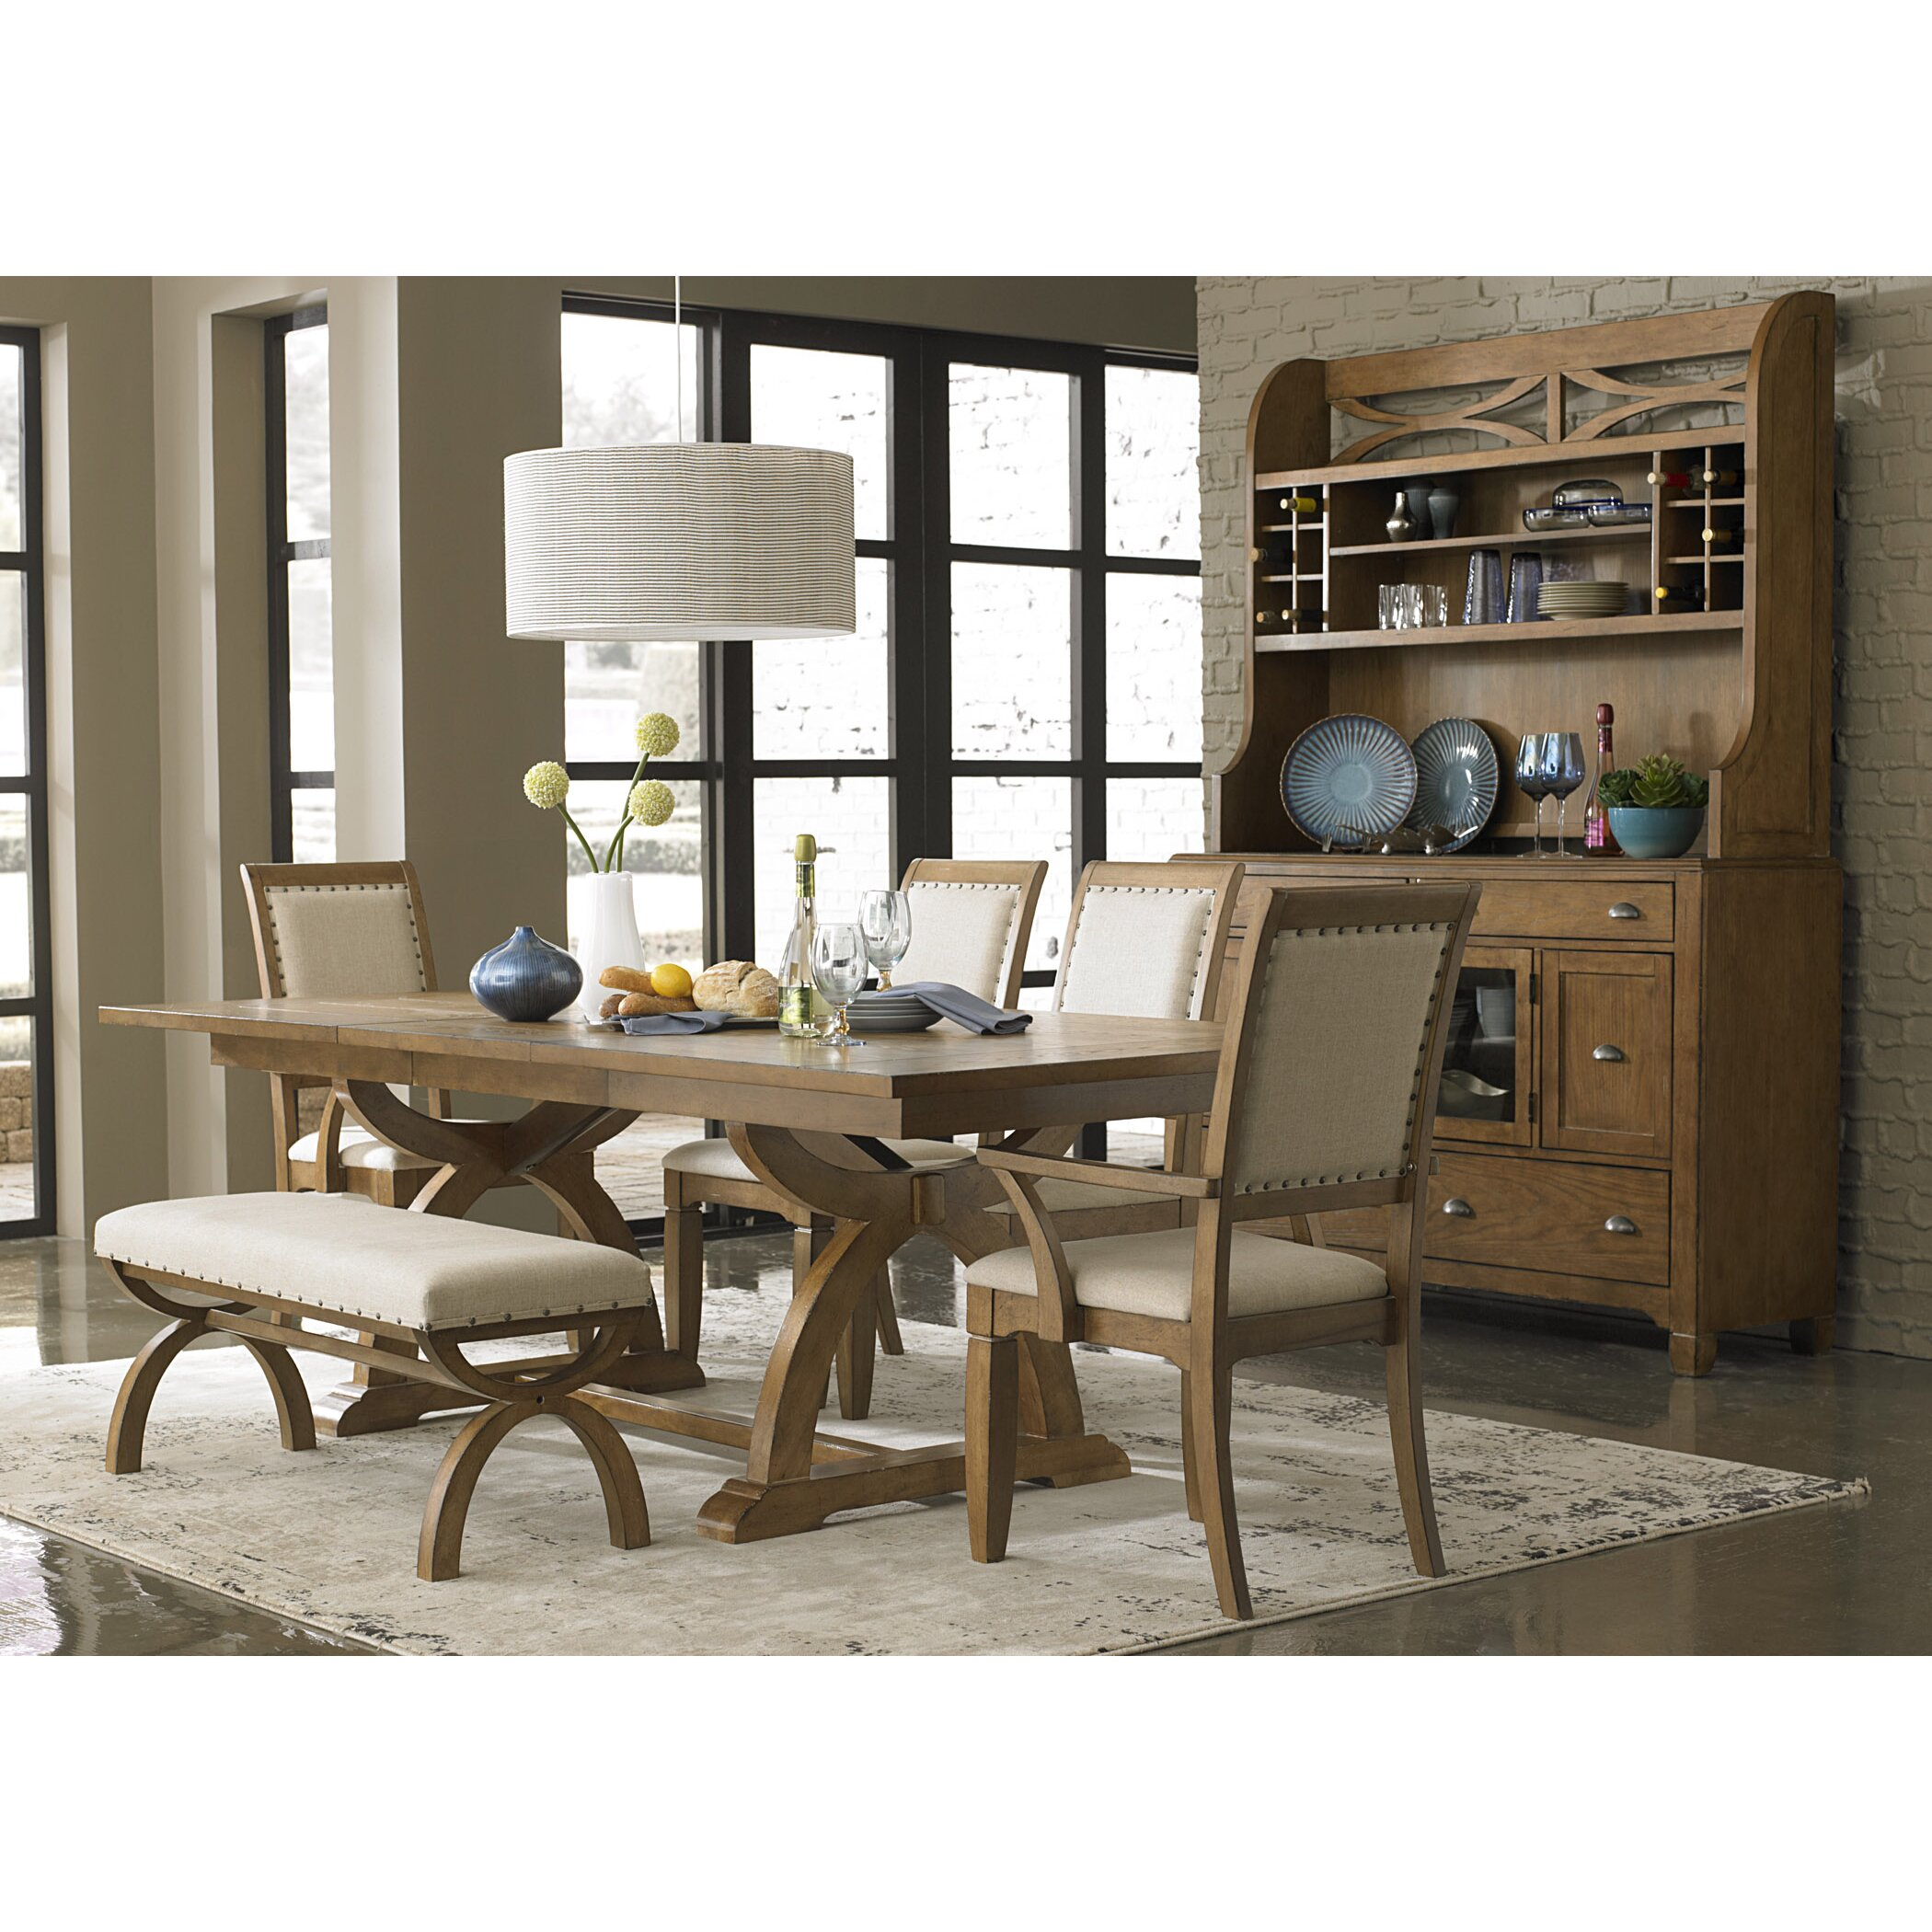 Liberty Dining Room Furniture: Liberty Furniture Town And Country 6 Piece Dining Set